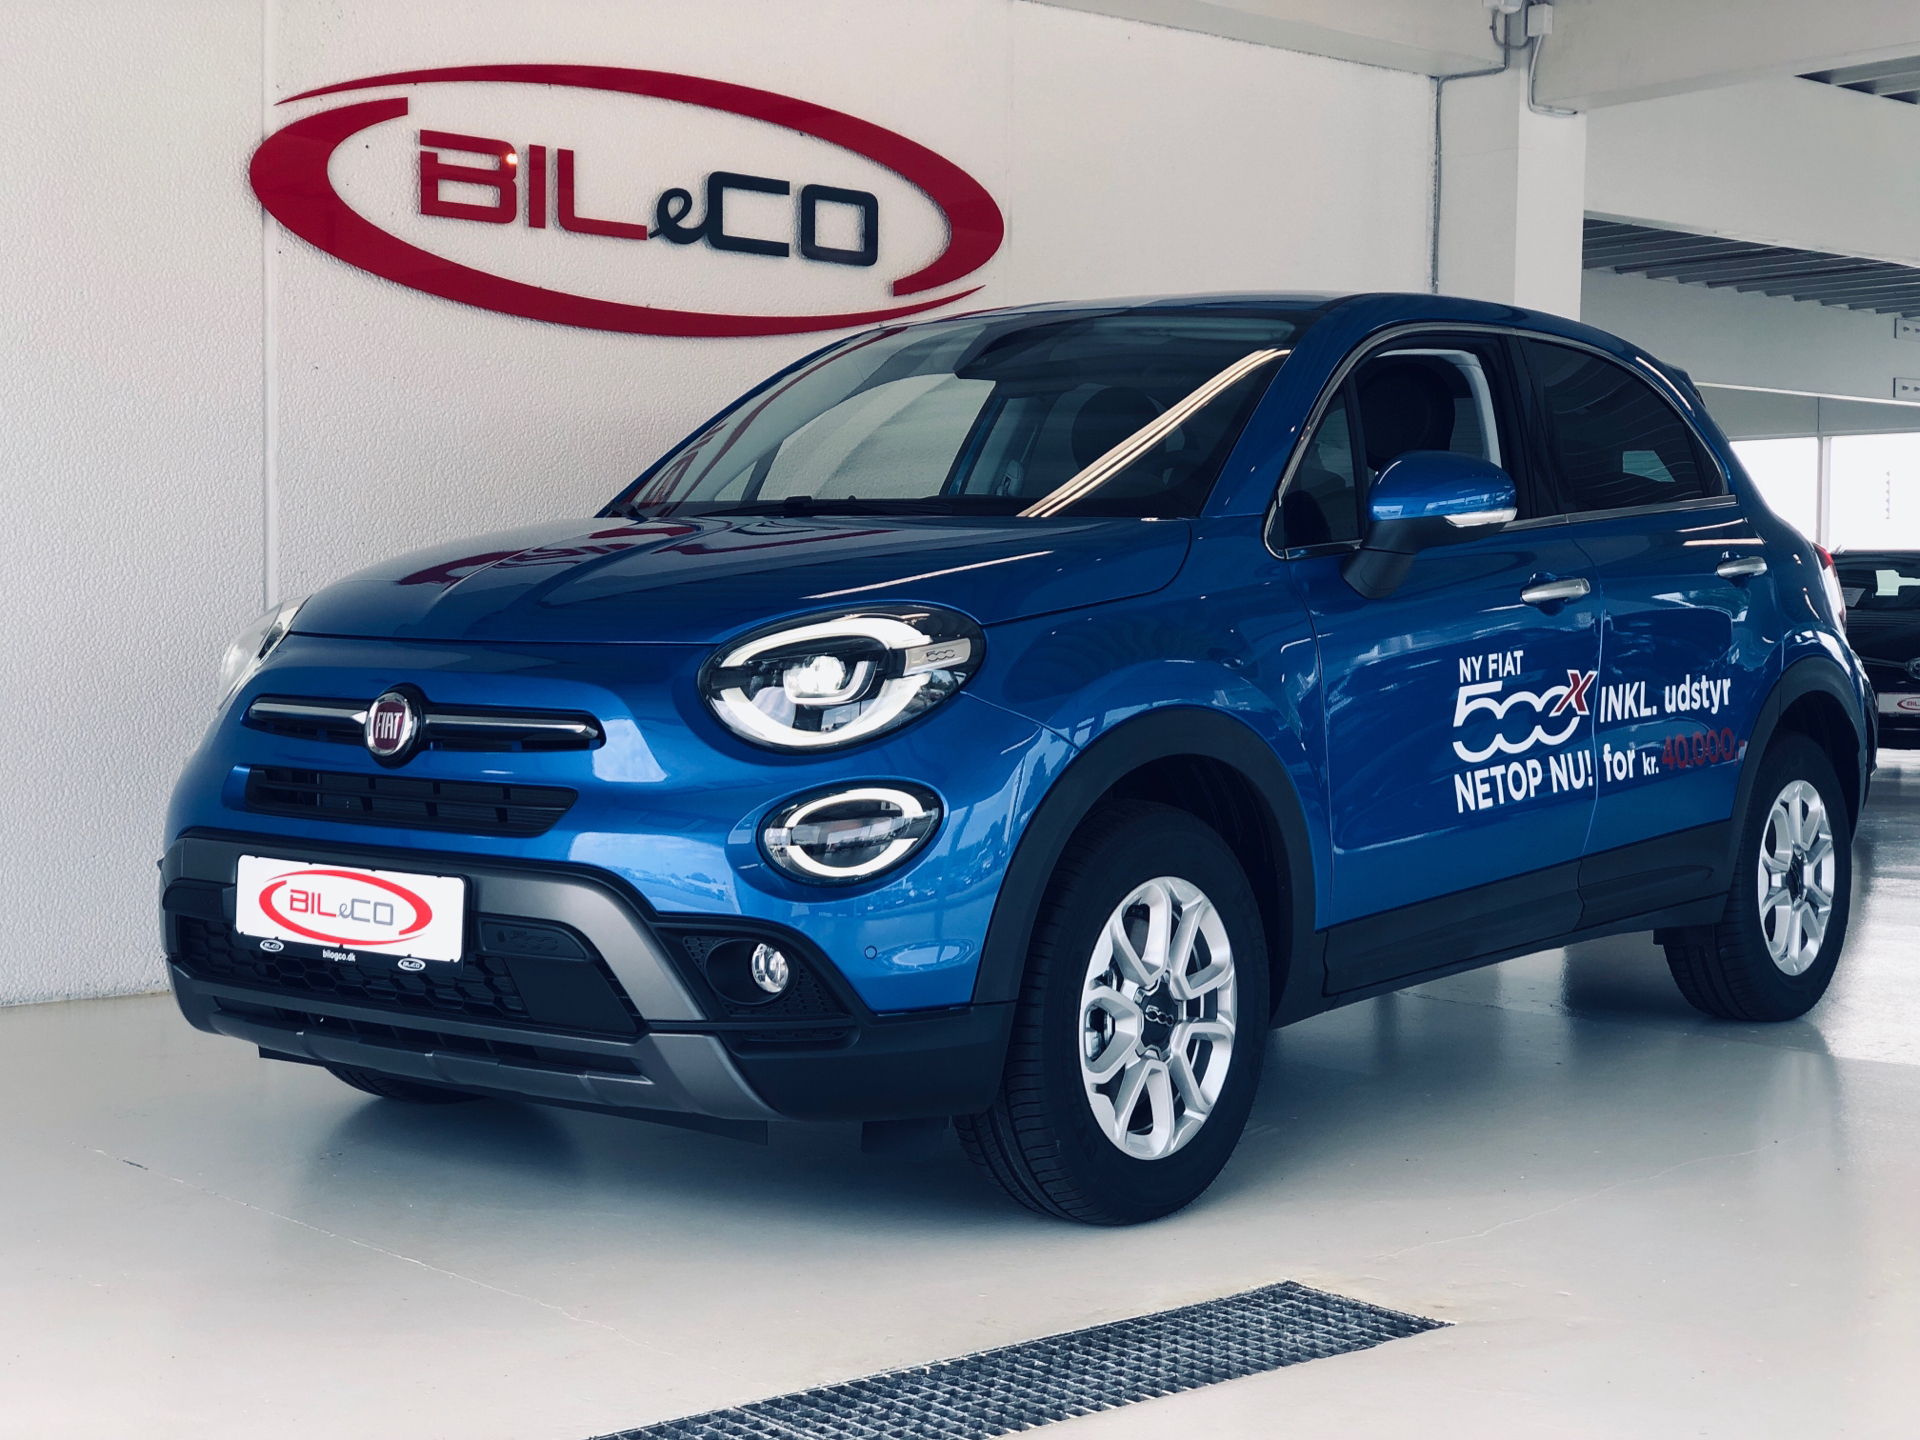 Billede af Fiat 500X 1,0 FireFly City Cross First Edition 120HK 5d 6g